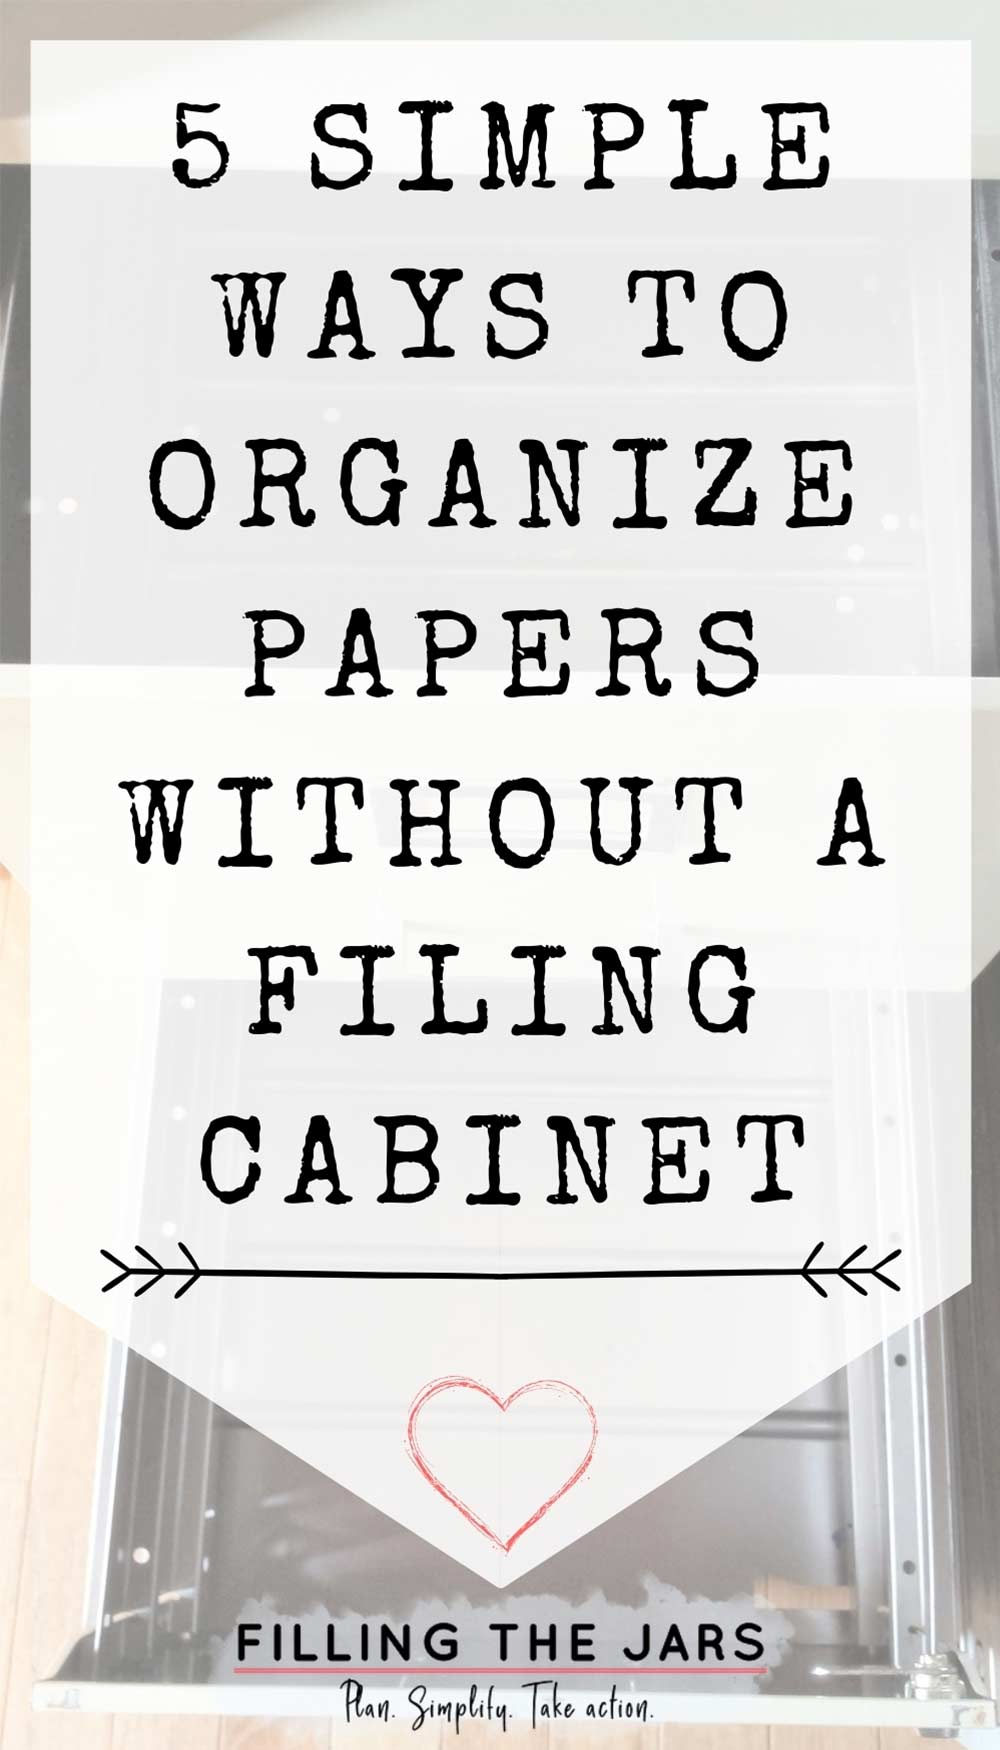 Text simple ways to organize papers without a filing cabinet on white background over image of open and empty file cabinet drawers.